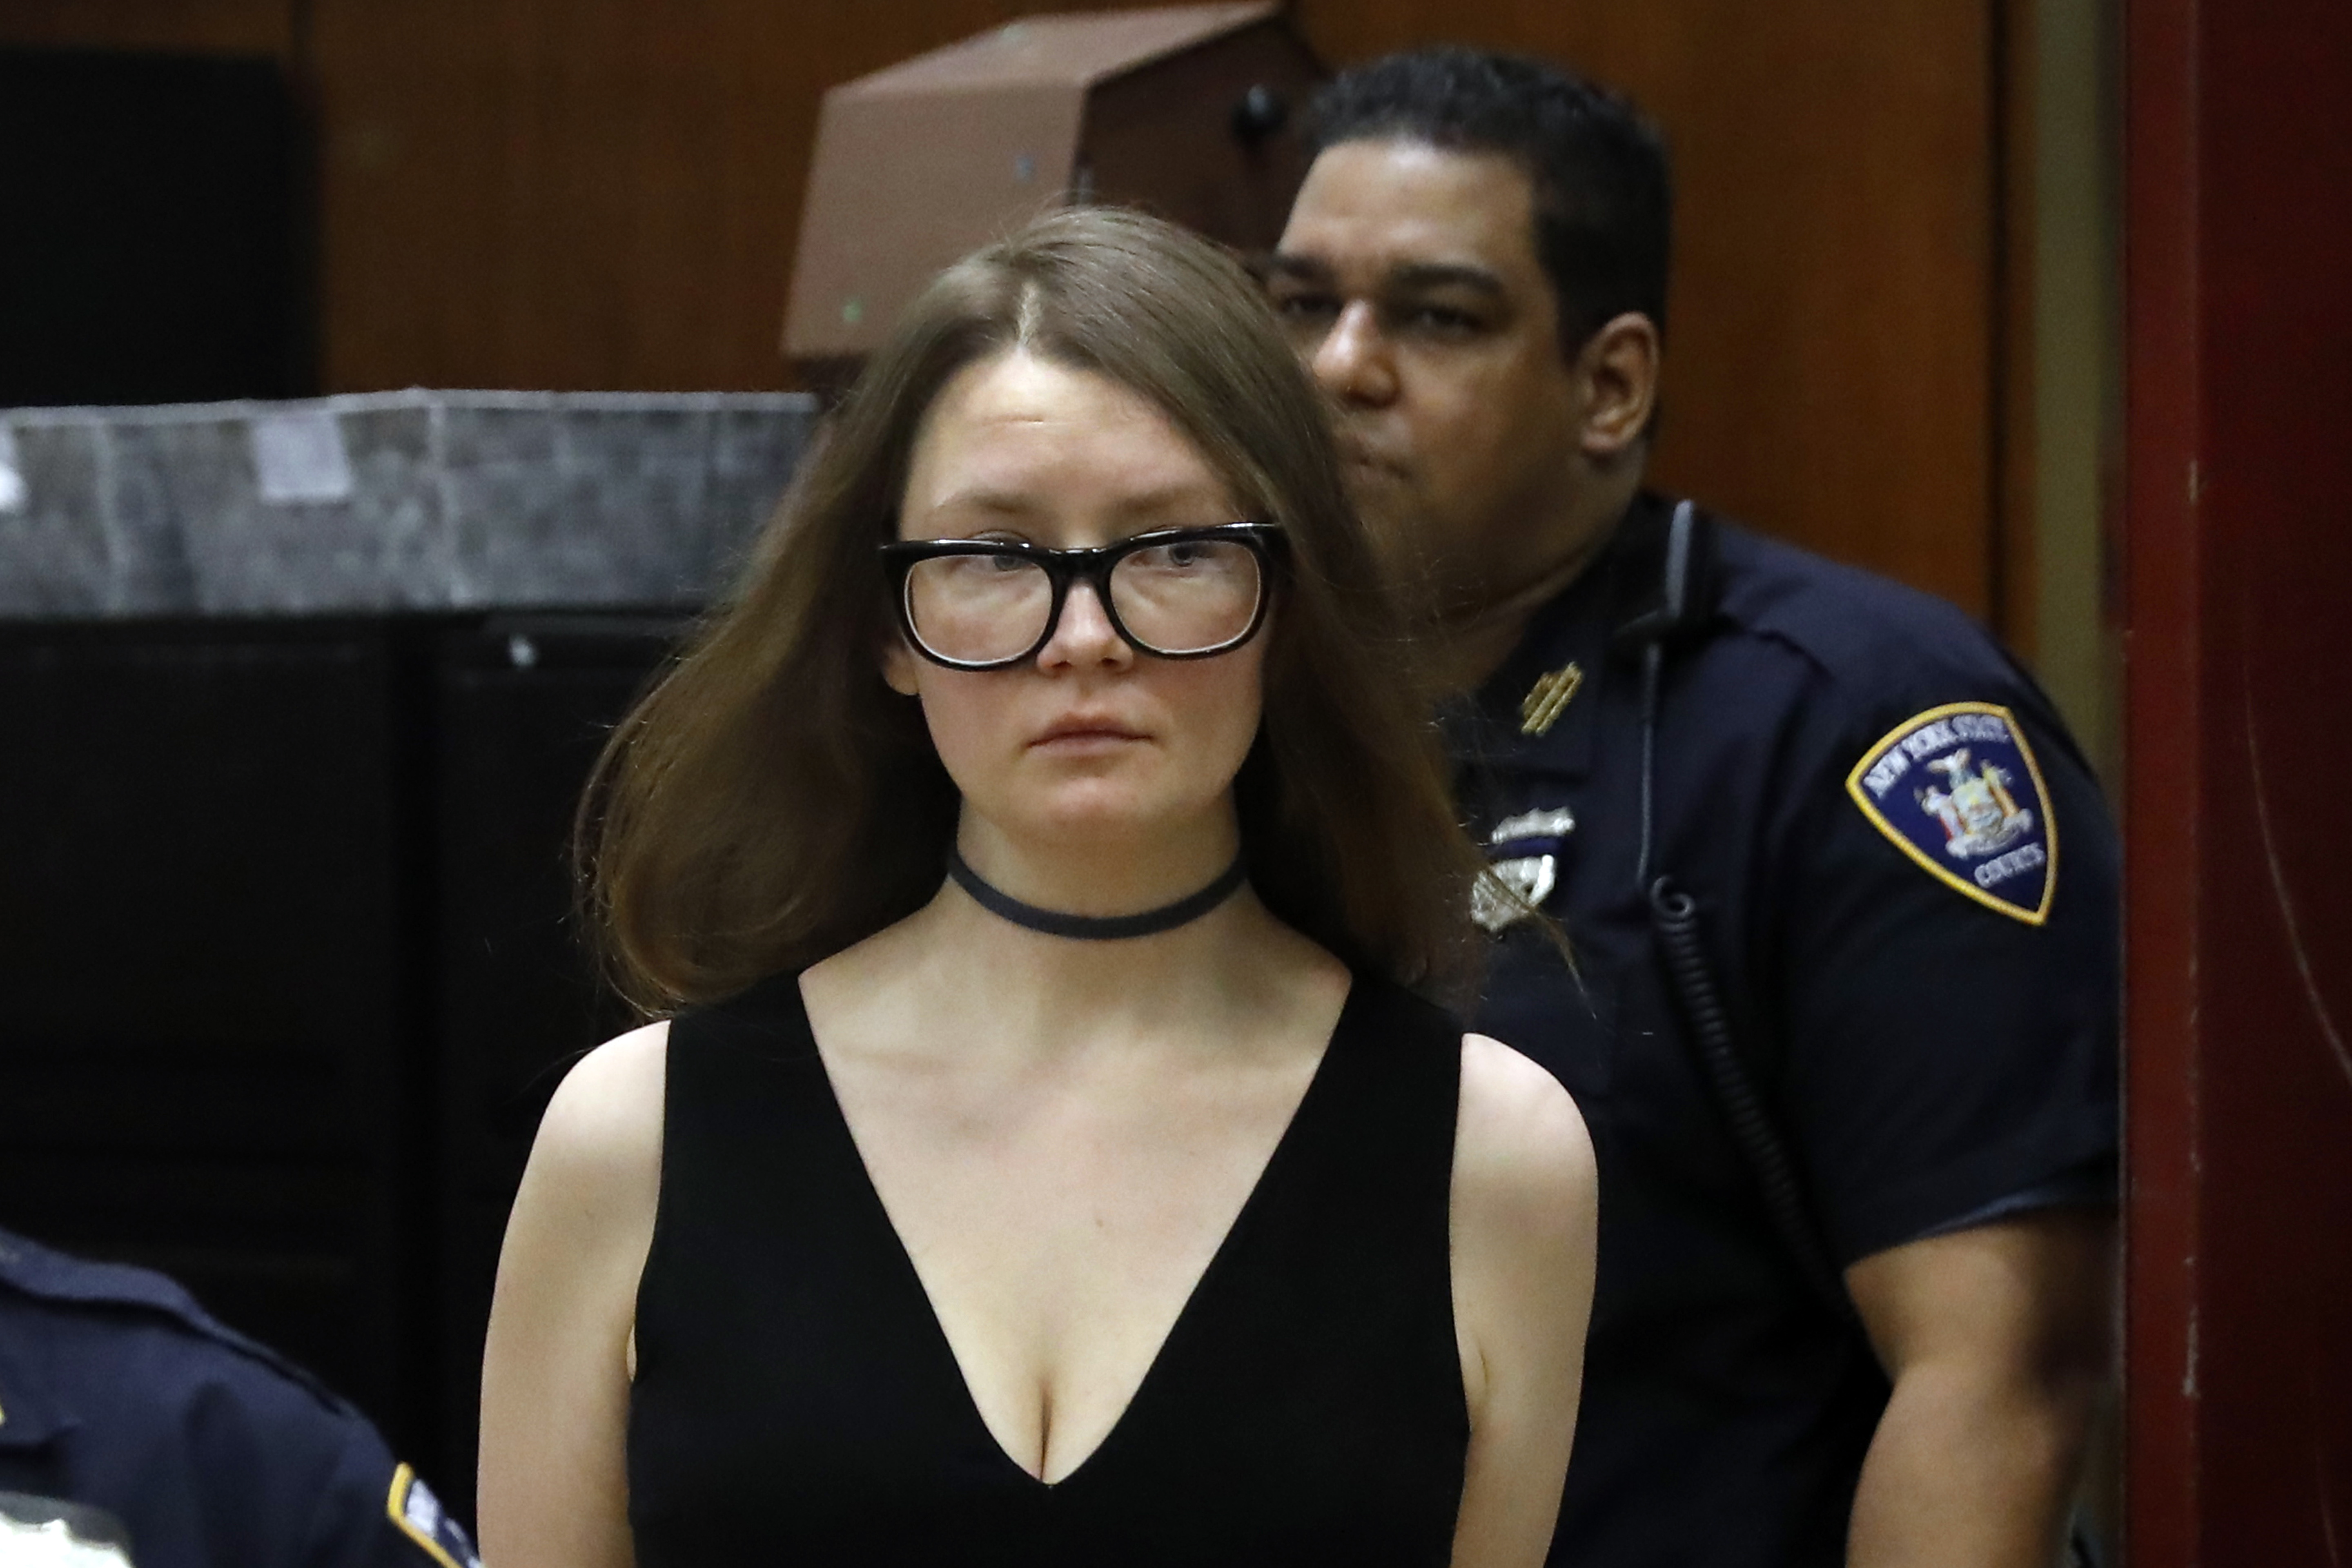 Anna Sorokin arrives in New York State Supreme Court, in New York, Wednesday, March 27, 2019.